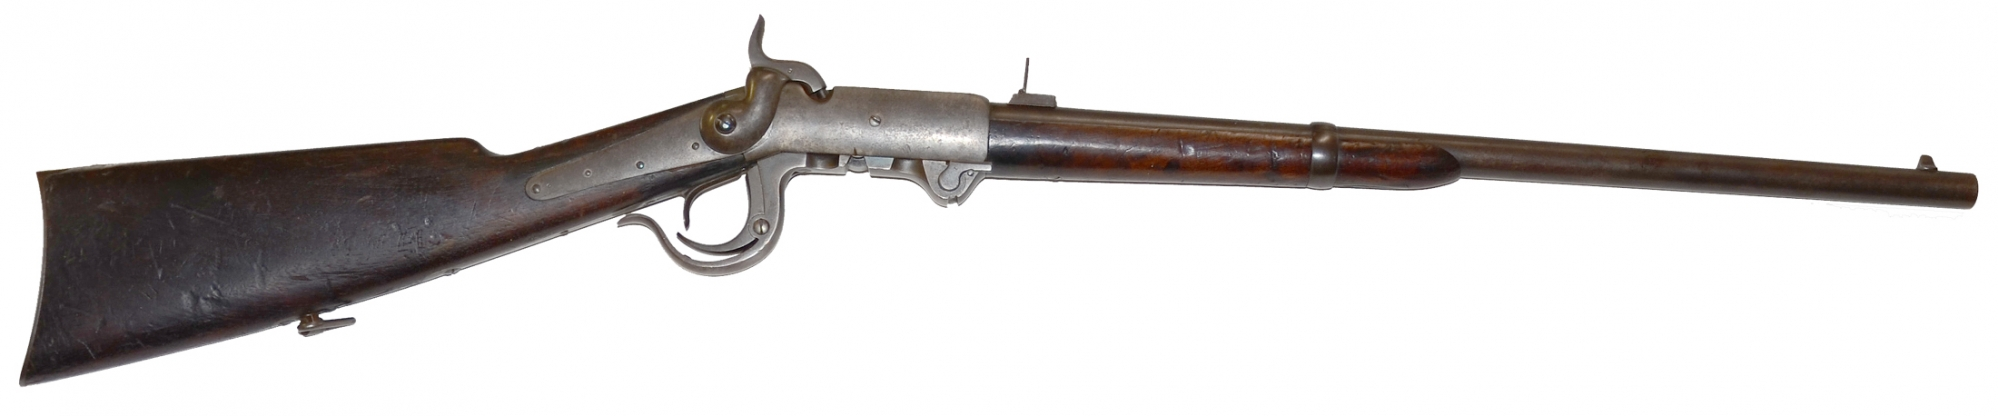 "BURNSIDE FIFTH MODEL CARBINE, ""MODEL OF 1864,"" EARLY 1864 PRODUCTION"